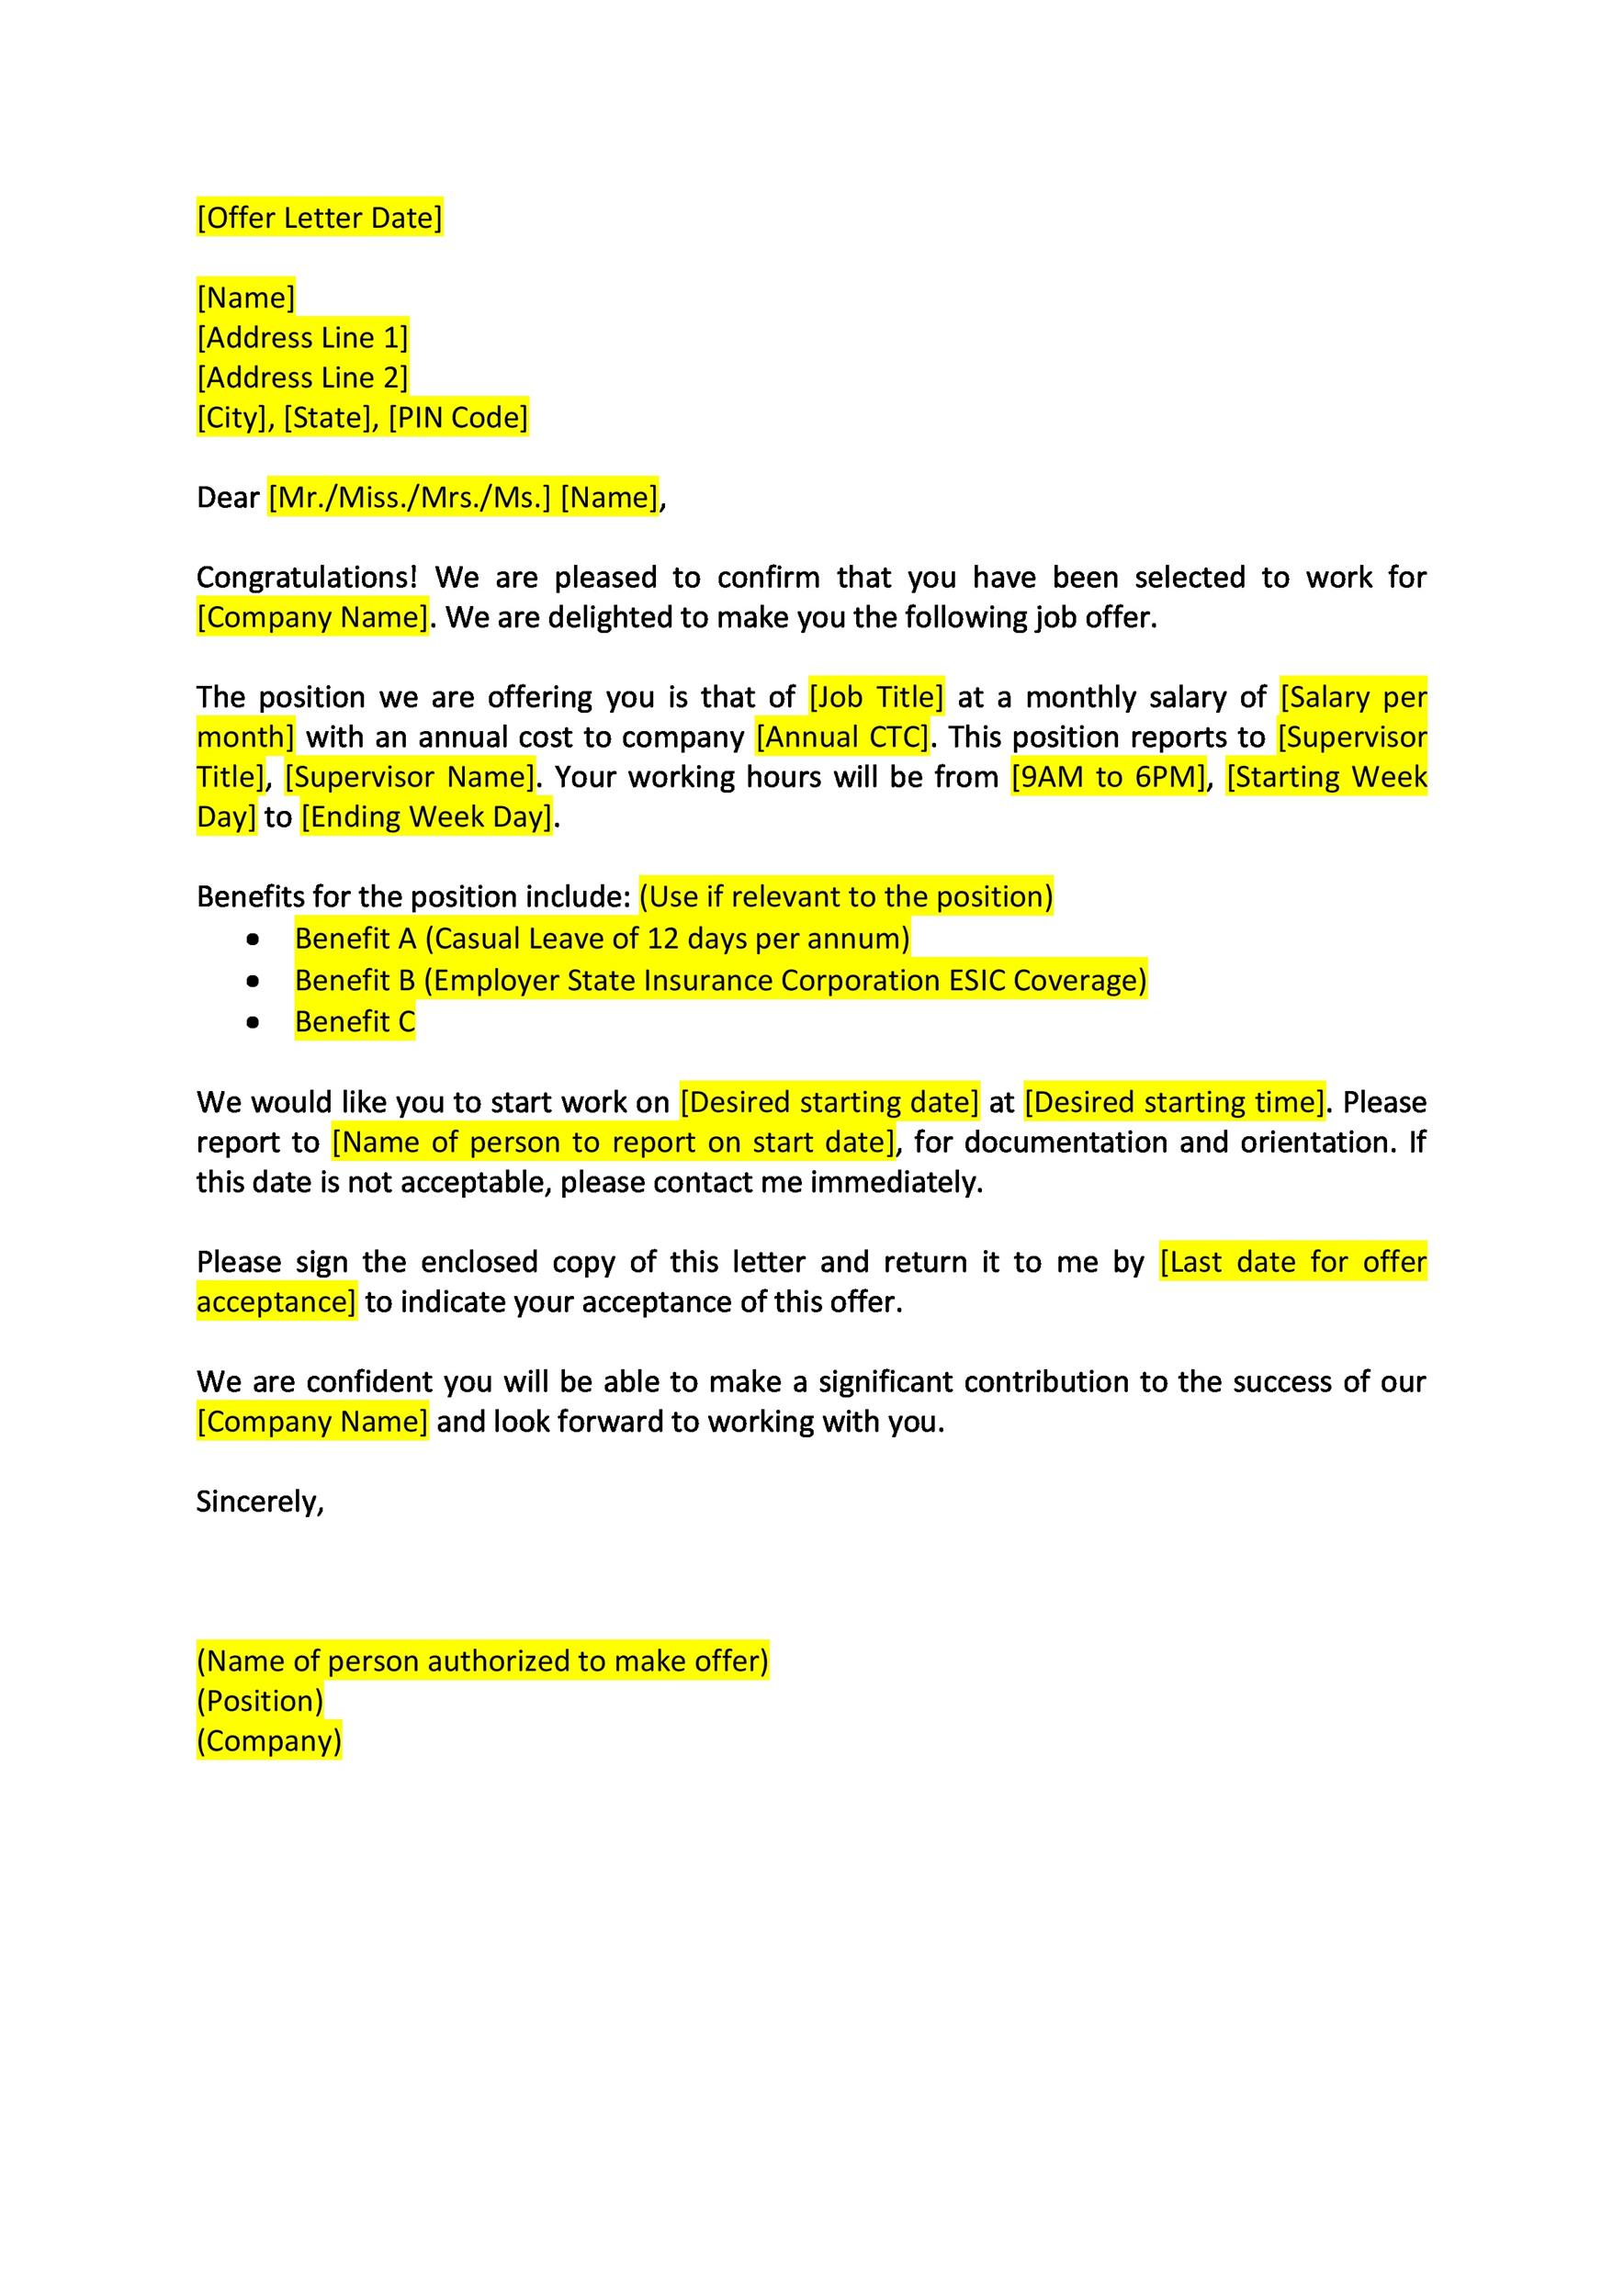 negotiating a job offer letter how to negotiate a job offer if you ...